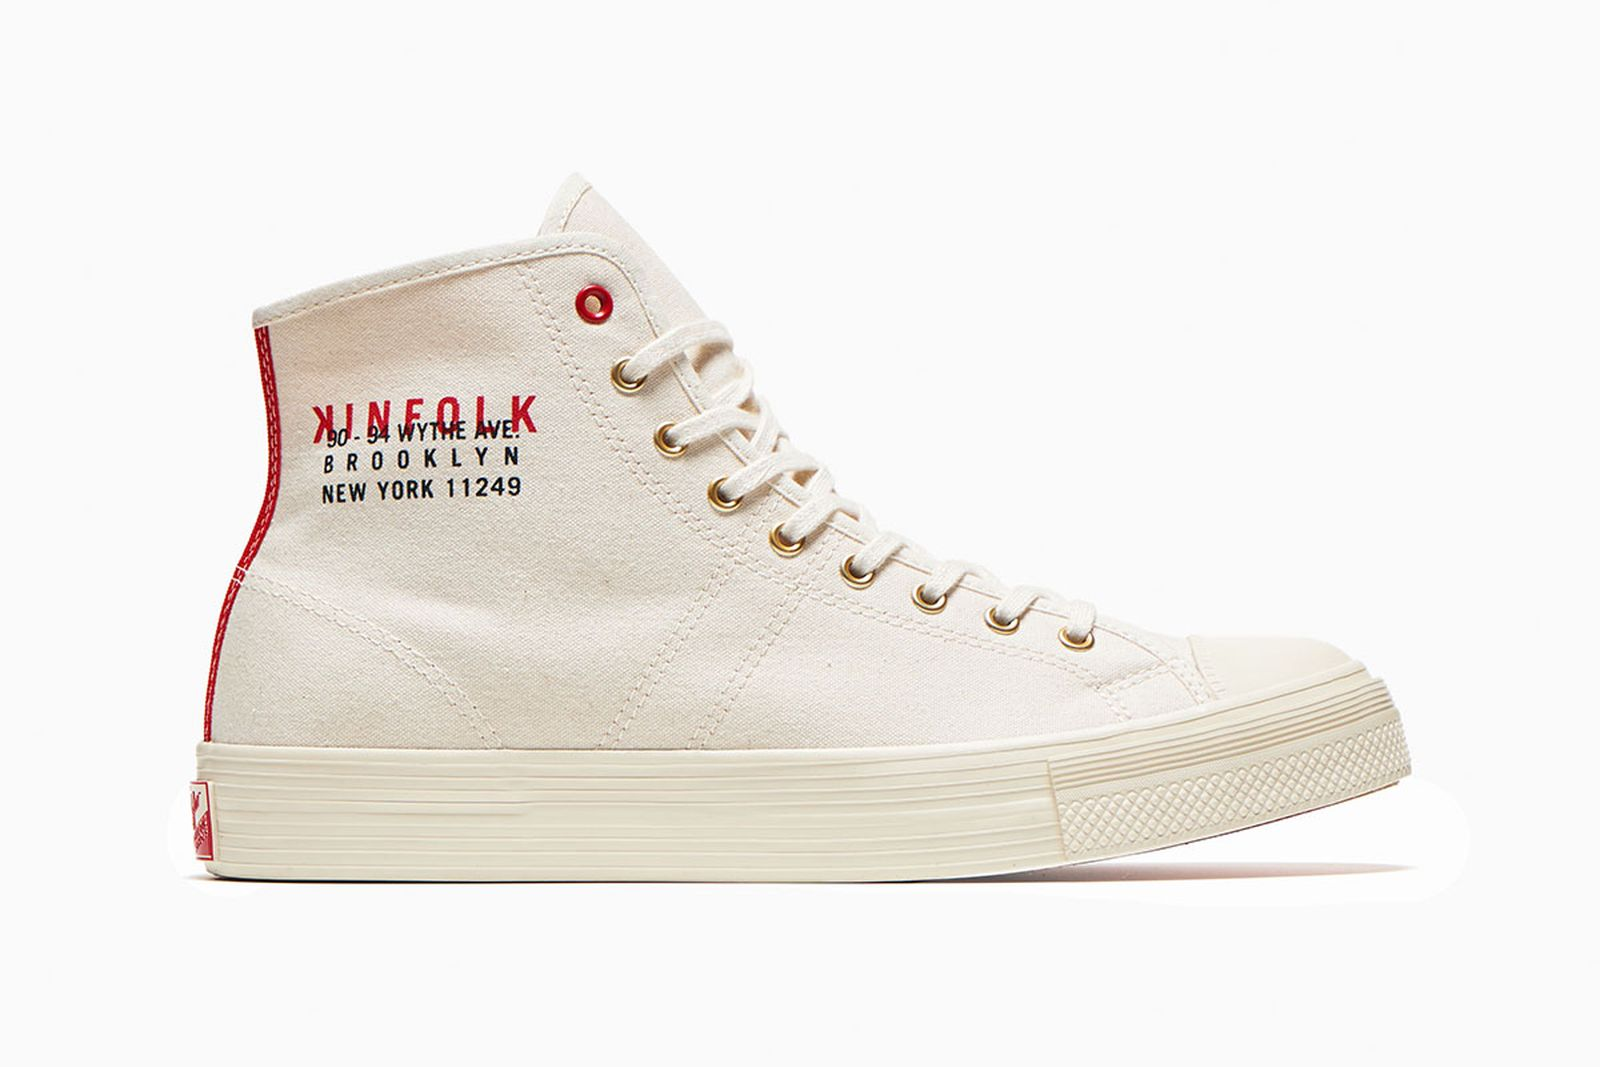 kinfolk 10th anniversary collaborations Converse POWERS bedwin & the heartbreakers